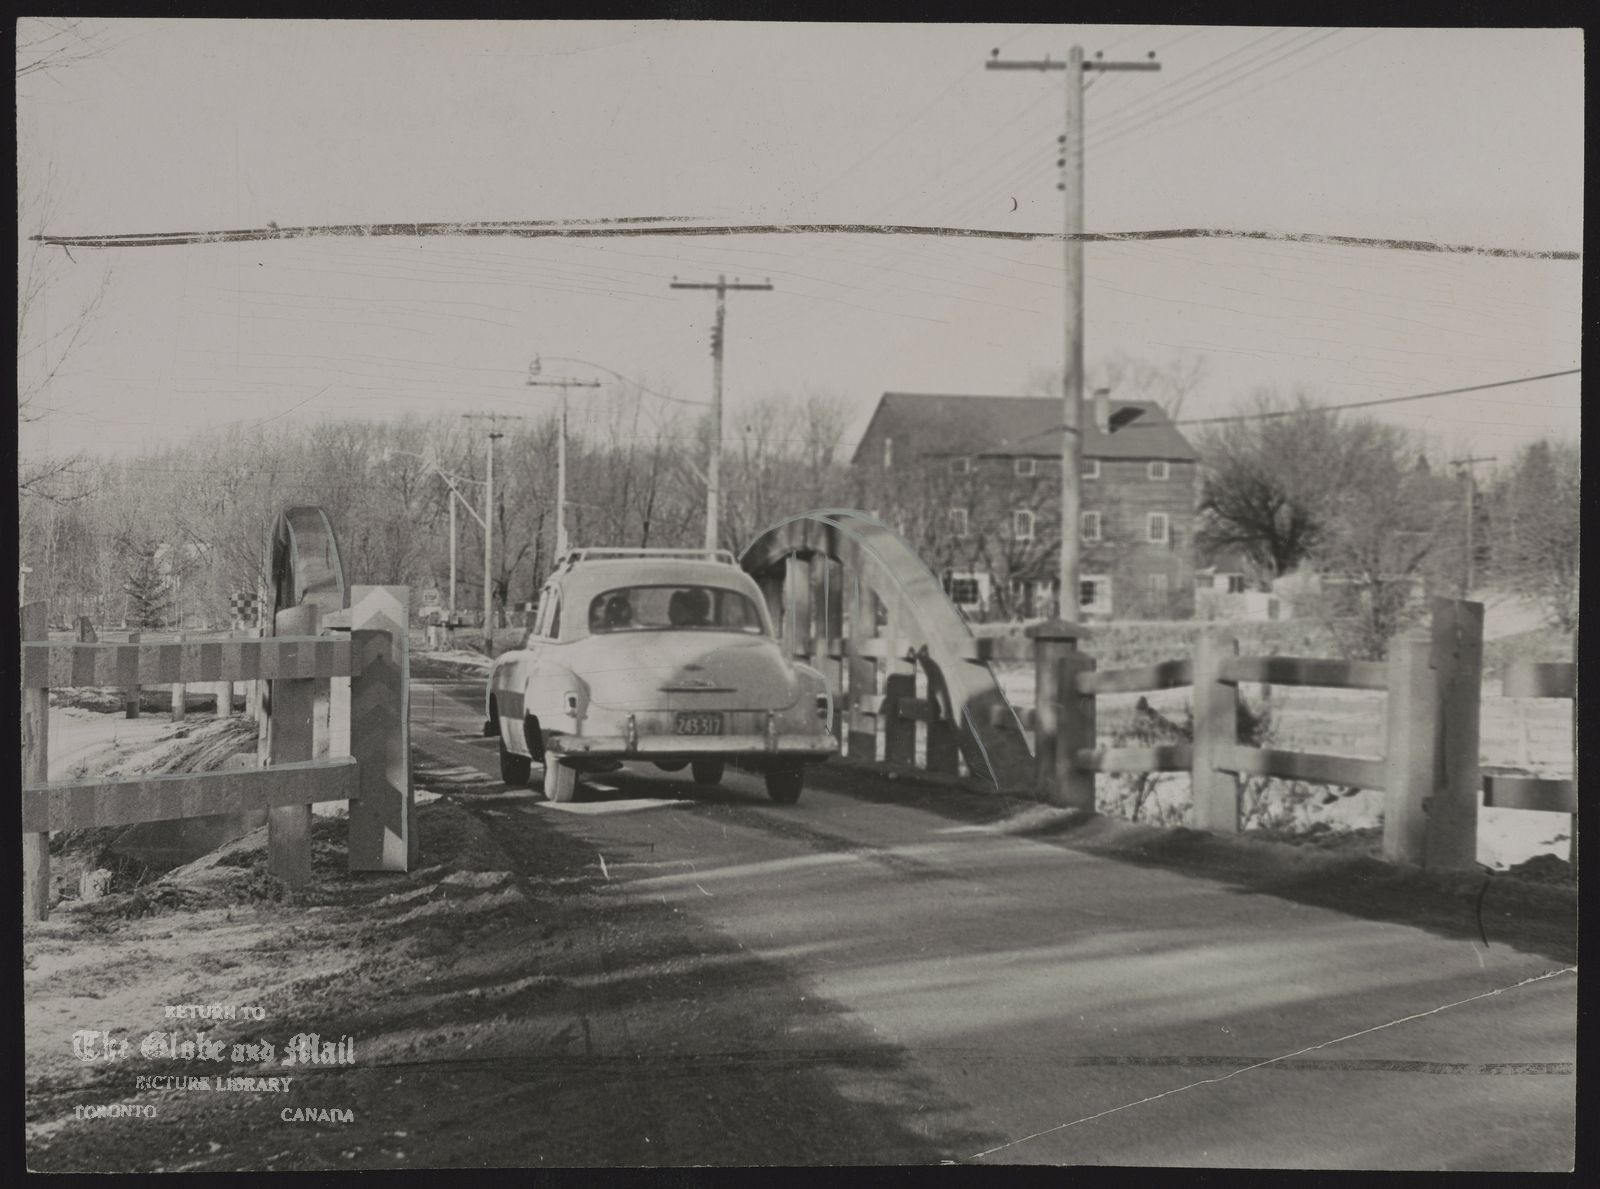 Bayview Ave, (Toronto ) Contrariwise there is no speed limit sign at bridge on Bayview Ave, just south of Steele's Ave. though it is strictly a one lane bridge. Further south Bayview has been Surfaced and could easily be turned into a four-lane thoroughfare. 1955. Toronto; Bayview Avenue, one-lane bridge south of Steeles. Accession#: 55360-4